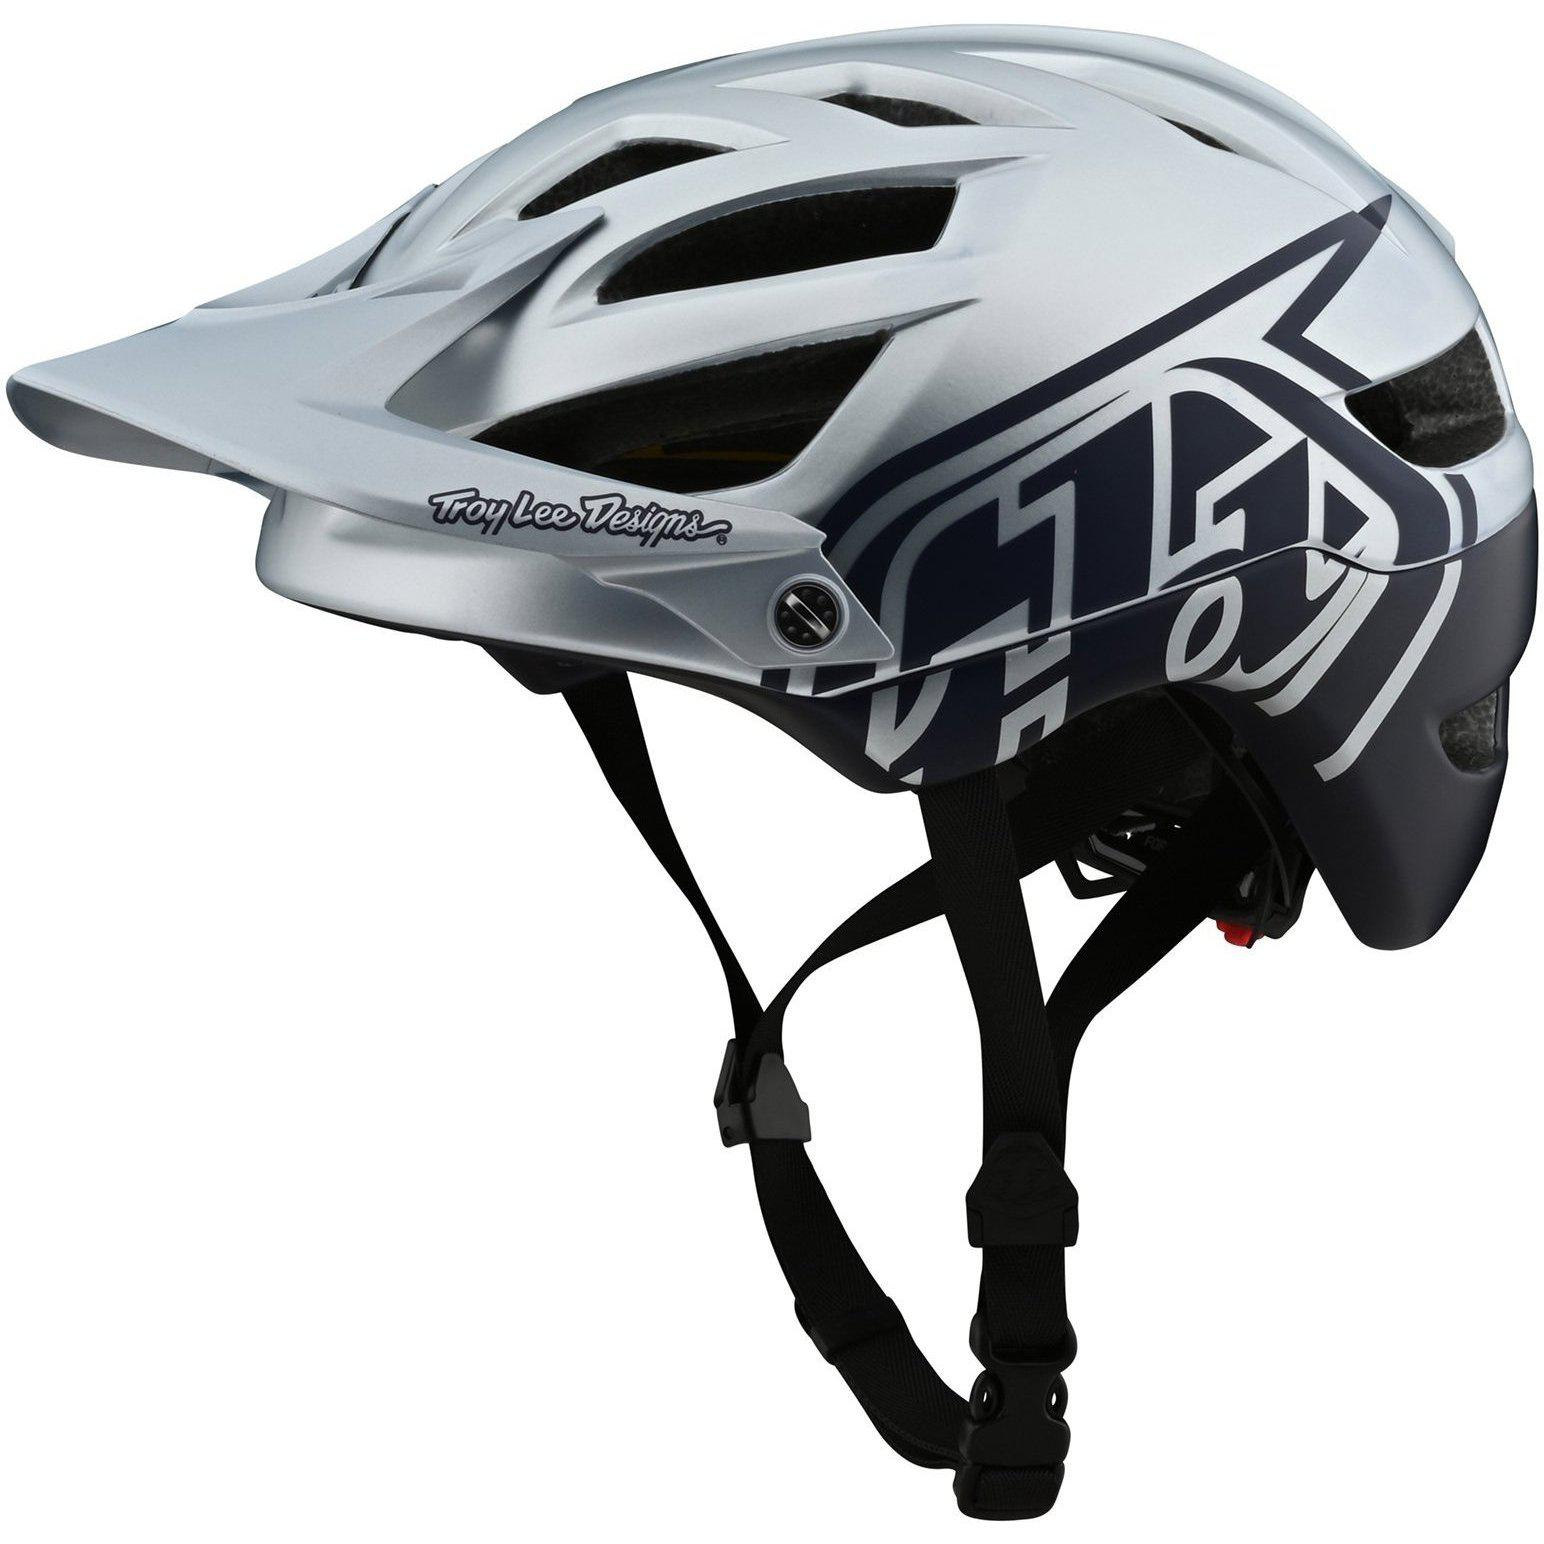 Troy Lee Designs-Troy Lee Designs A1 Classic MIPS Helmet-Classic - Silver/Navy-M/L-TLD190111133-saddleback-elite-performance-cycling